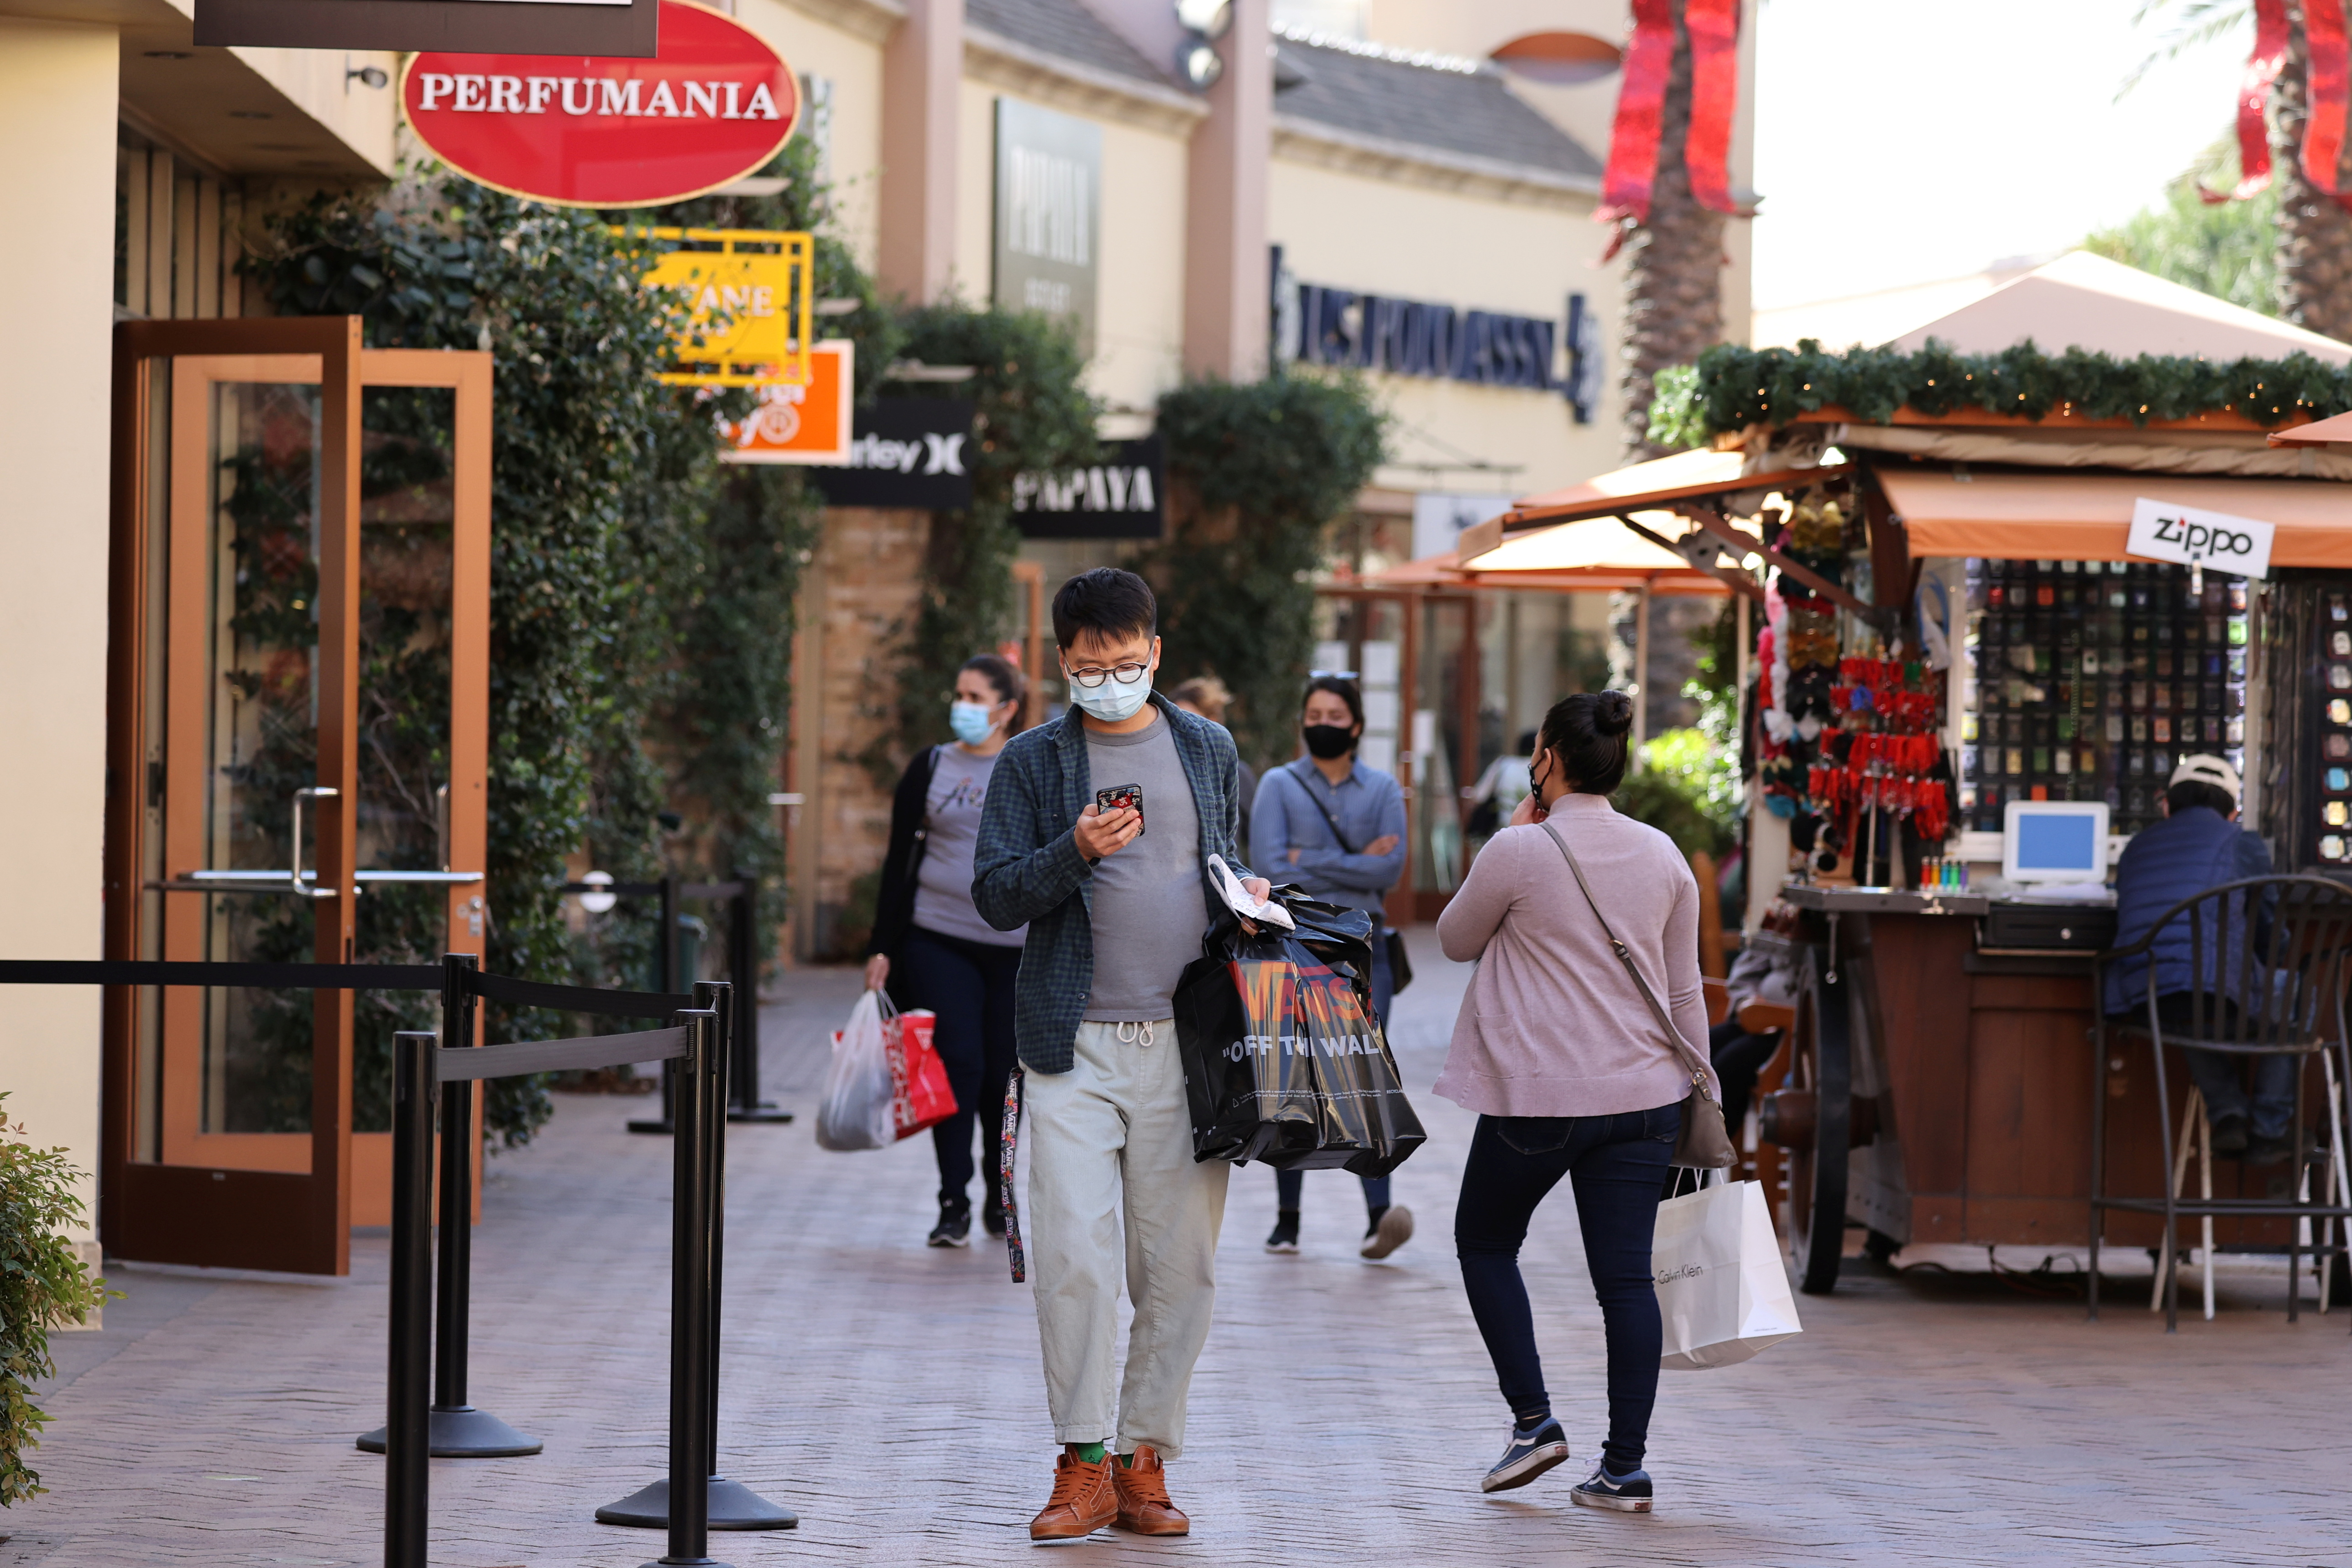 People shop at the Citadel Outlet mall, as the global outbreak of the coronavirus disease (COVID-19) continues, in Commerce, California, U.S., December 3, 2020. REUTERS/Lucy Nicholson